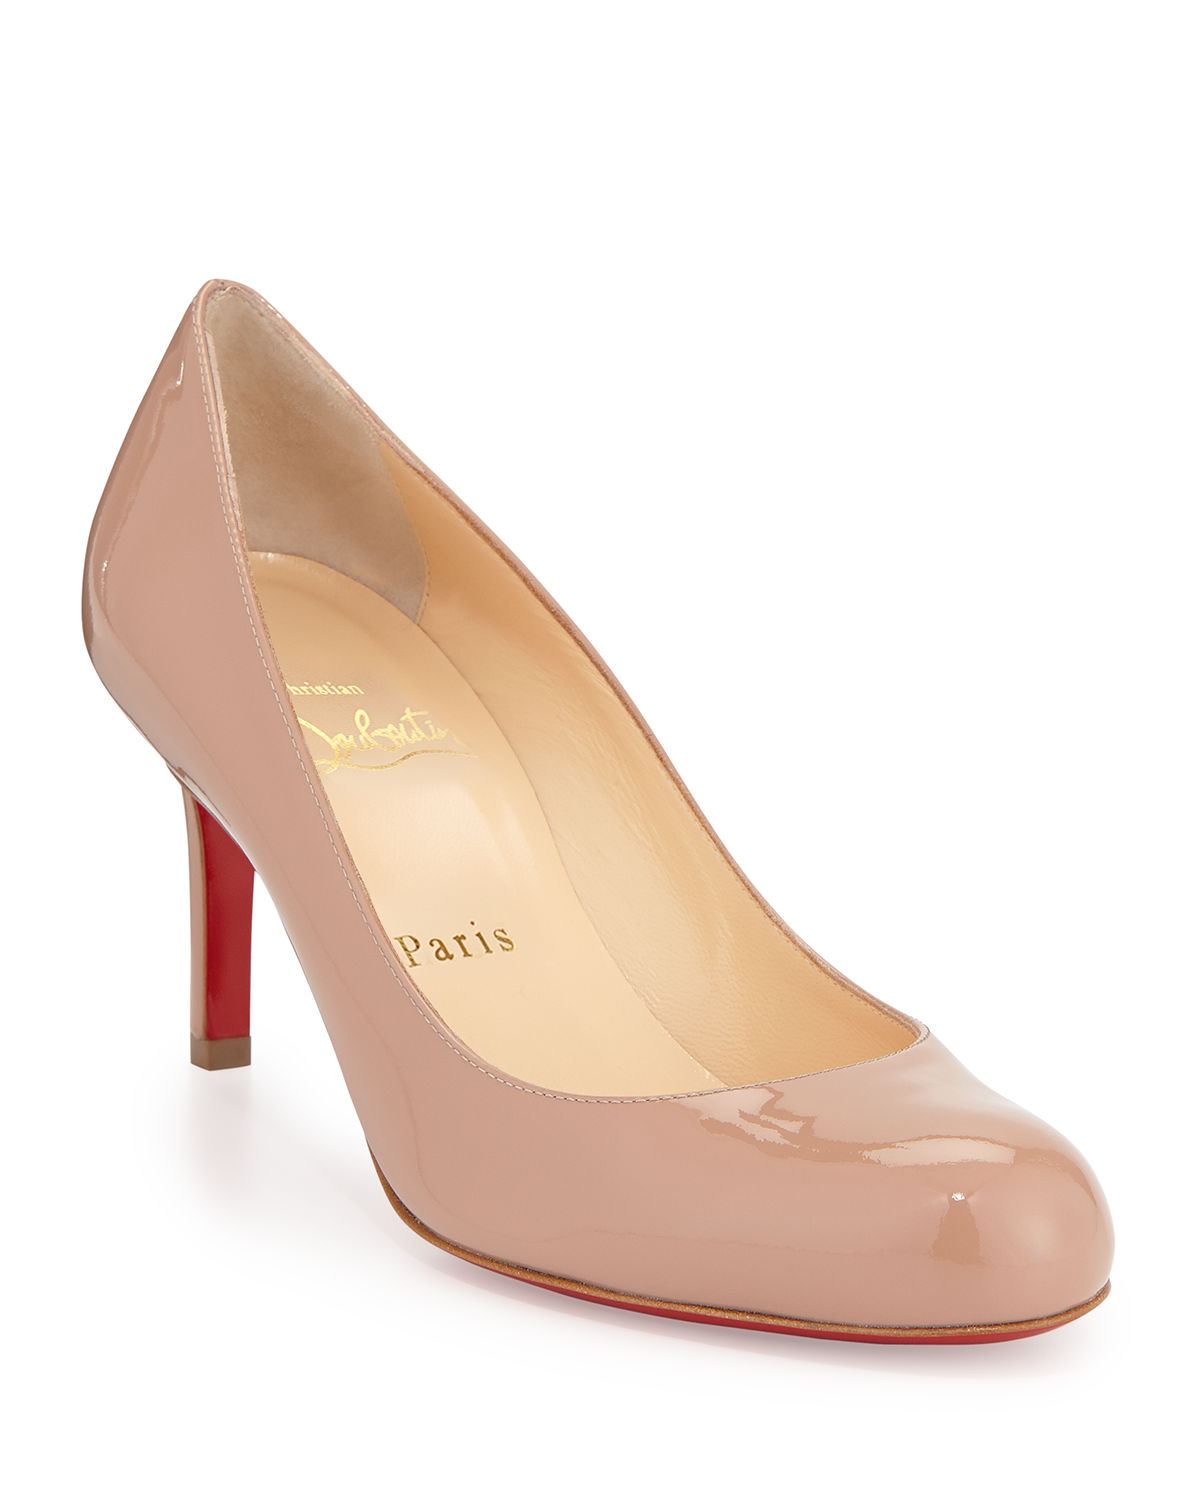 318e247c5665 Christian Louboutin Simple Patent Red Sole Pump